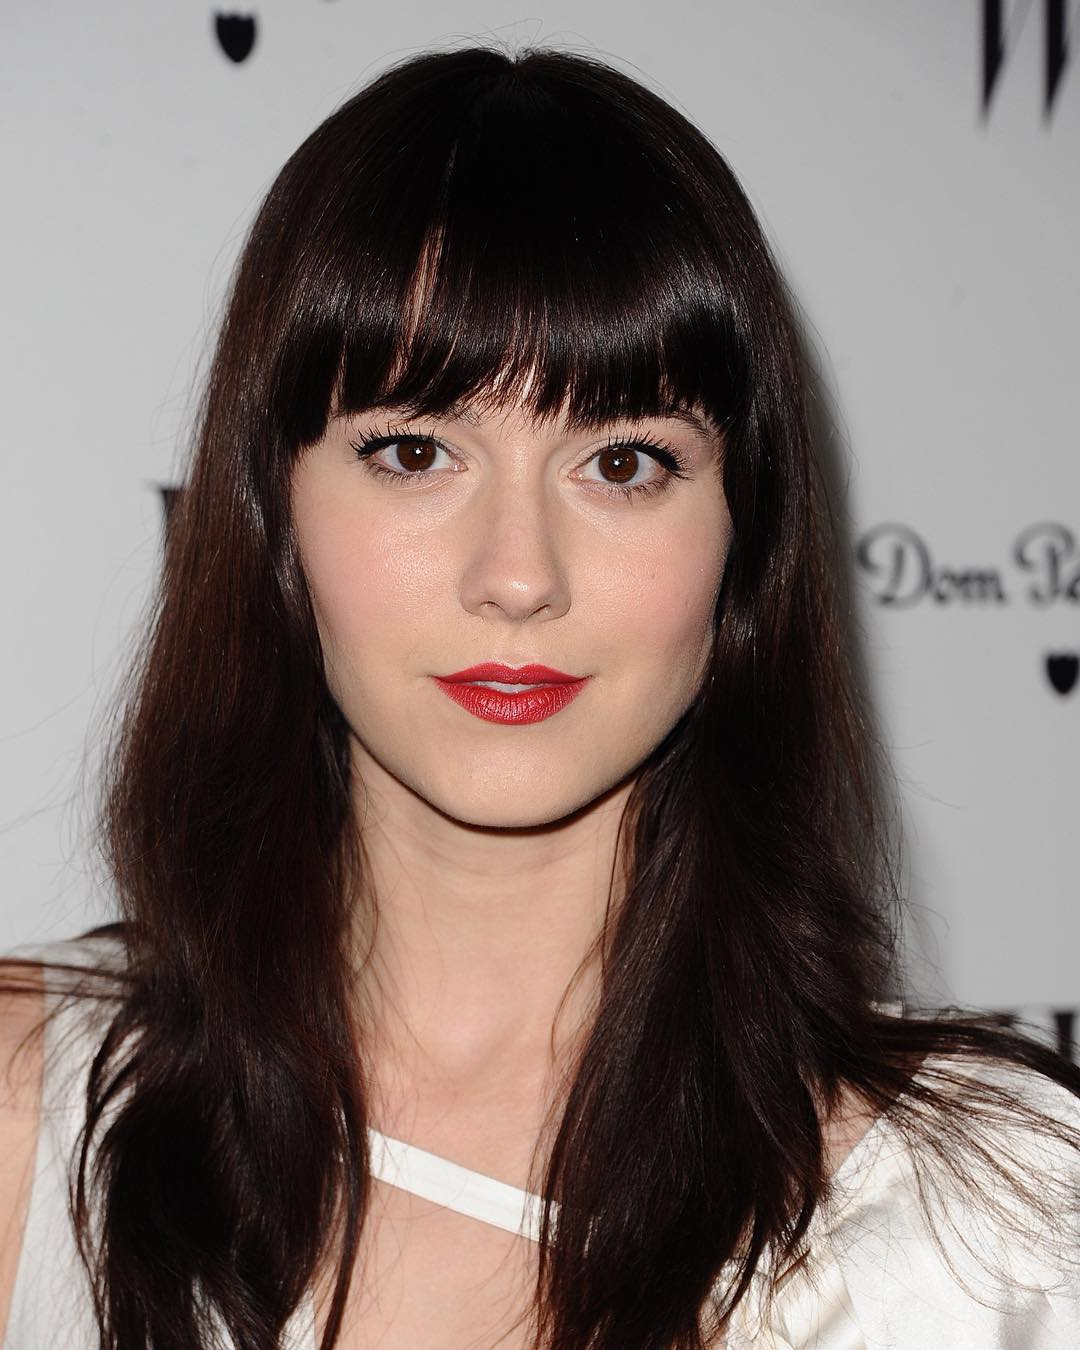 mary elizabeth winstead 22 1 2018 22 31 18 566